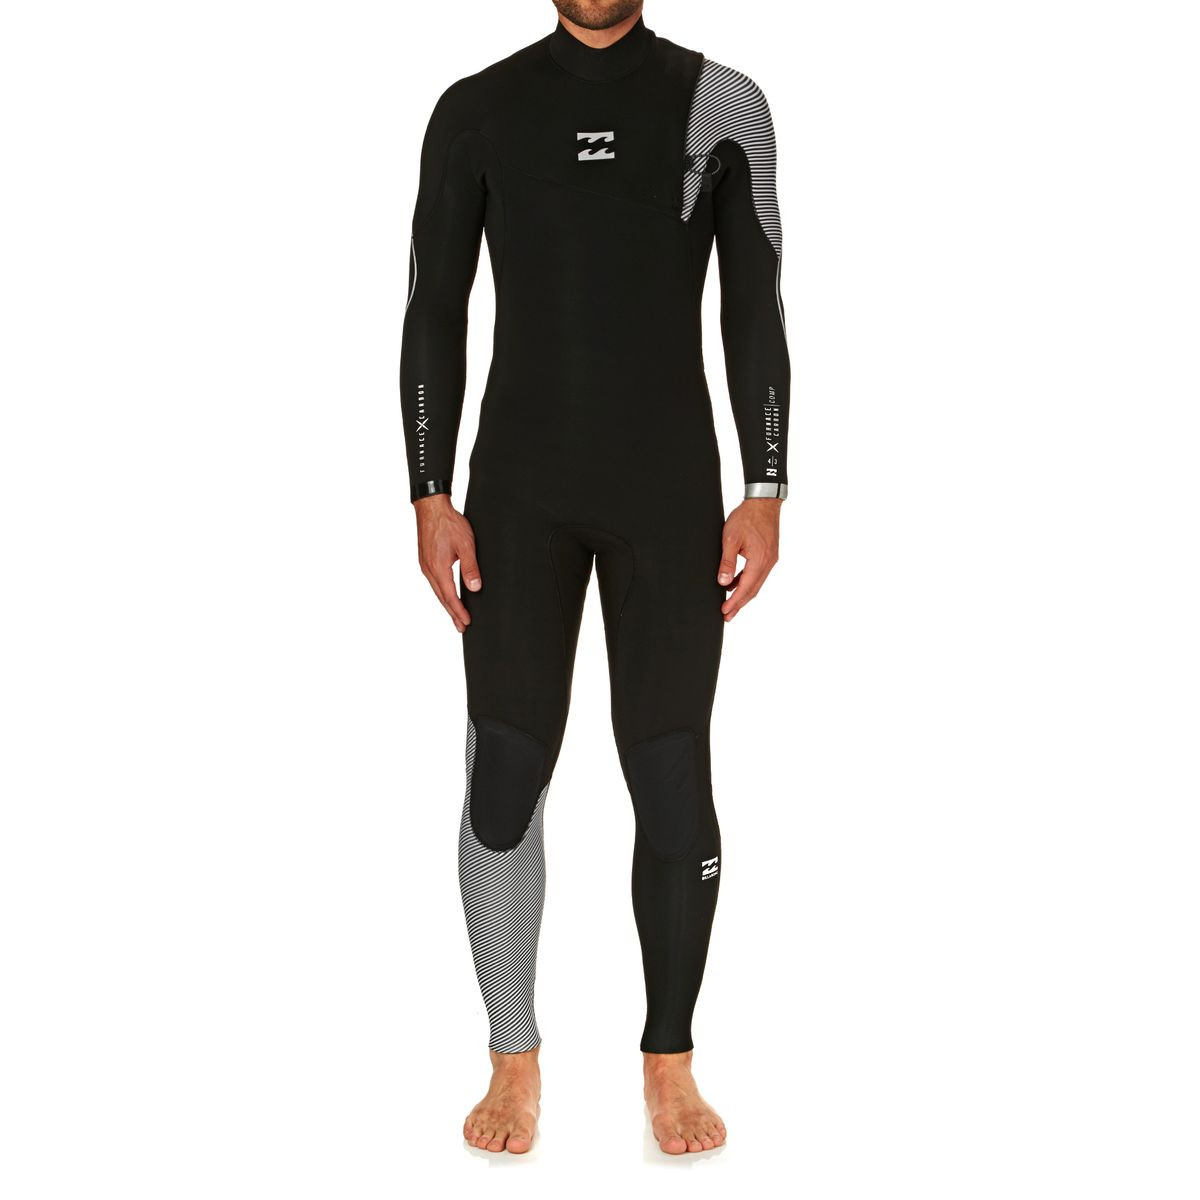 Billabong Furnace Comp 4/3mm 2018 Zipperless Wetsuit - Black